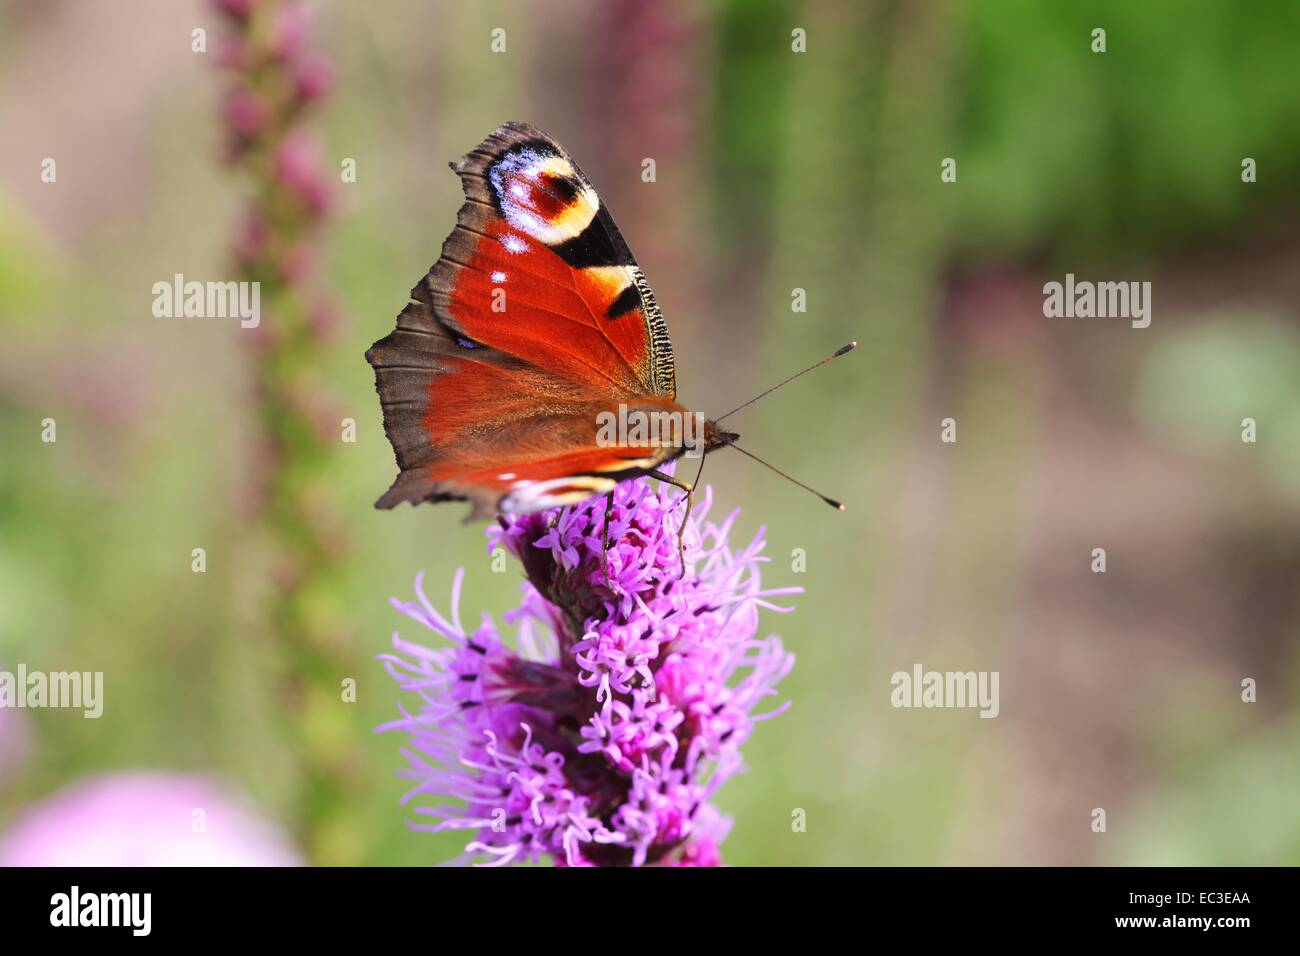 Eacock butterfly, Nymphalidae - Stock Image